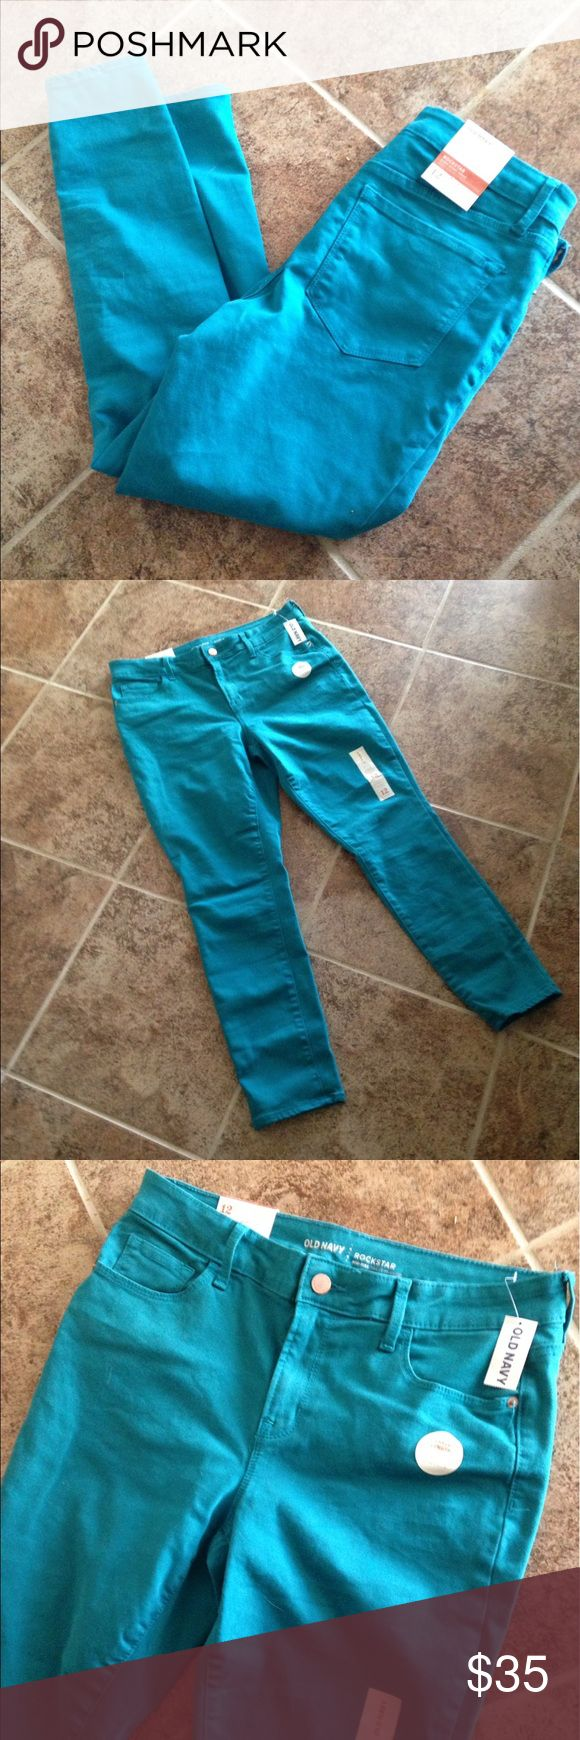 NWT Old Navy Rockstar Pop Color Skinny Jeans NWT Old Navy Rockstar Pop Color Skinny Jeans. Color is tattle teal. True to size! Open to offers! Old Navy Jeans Skinny